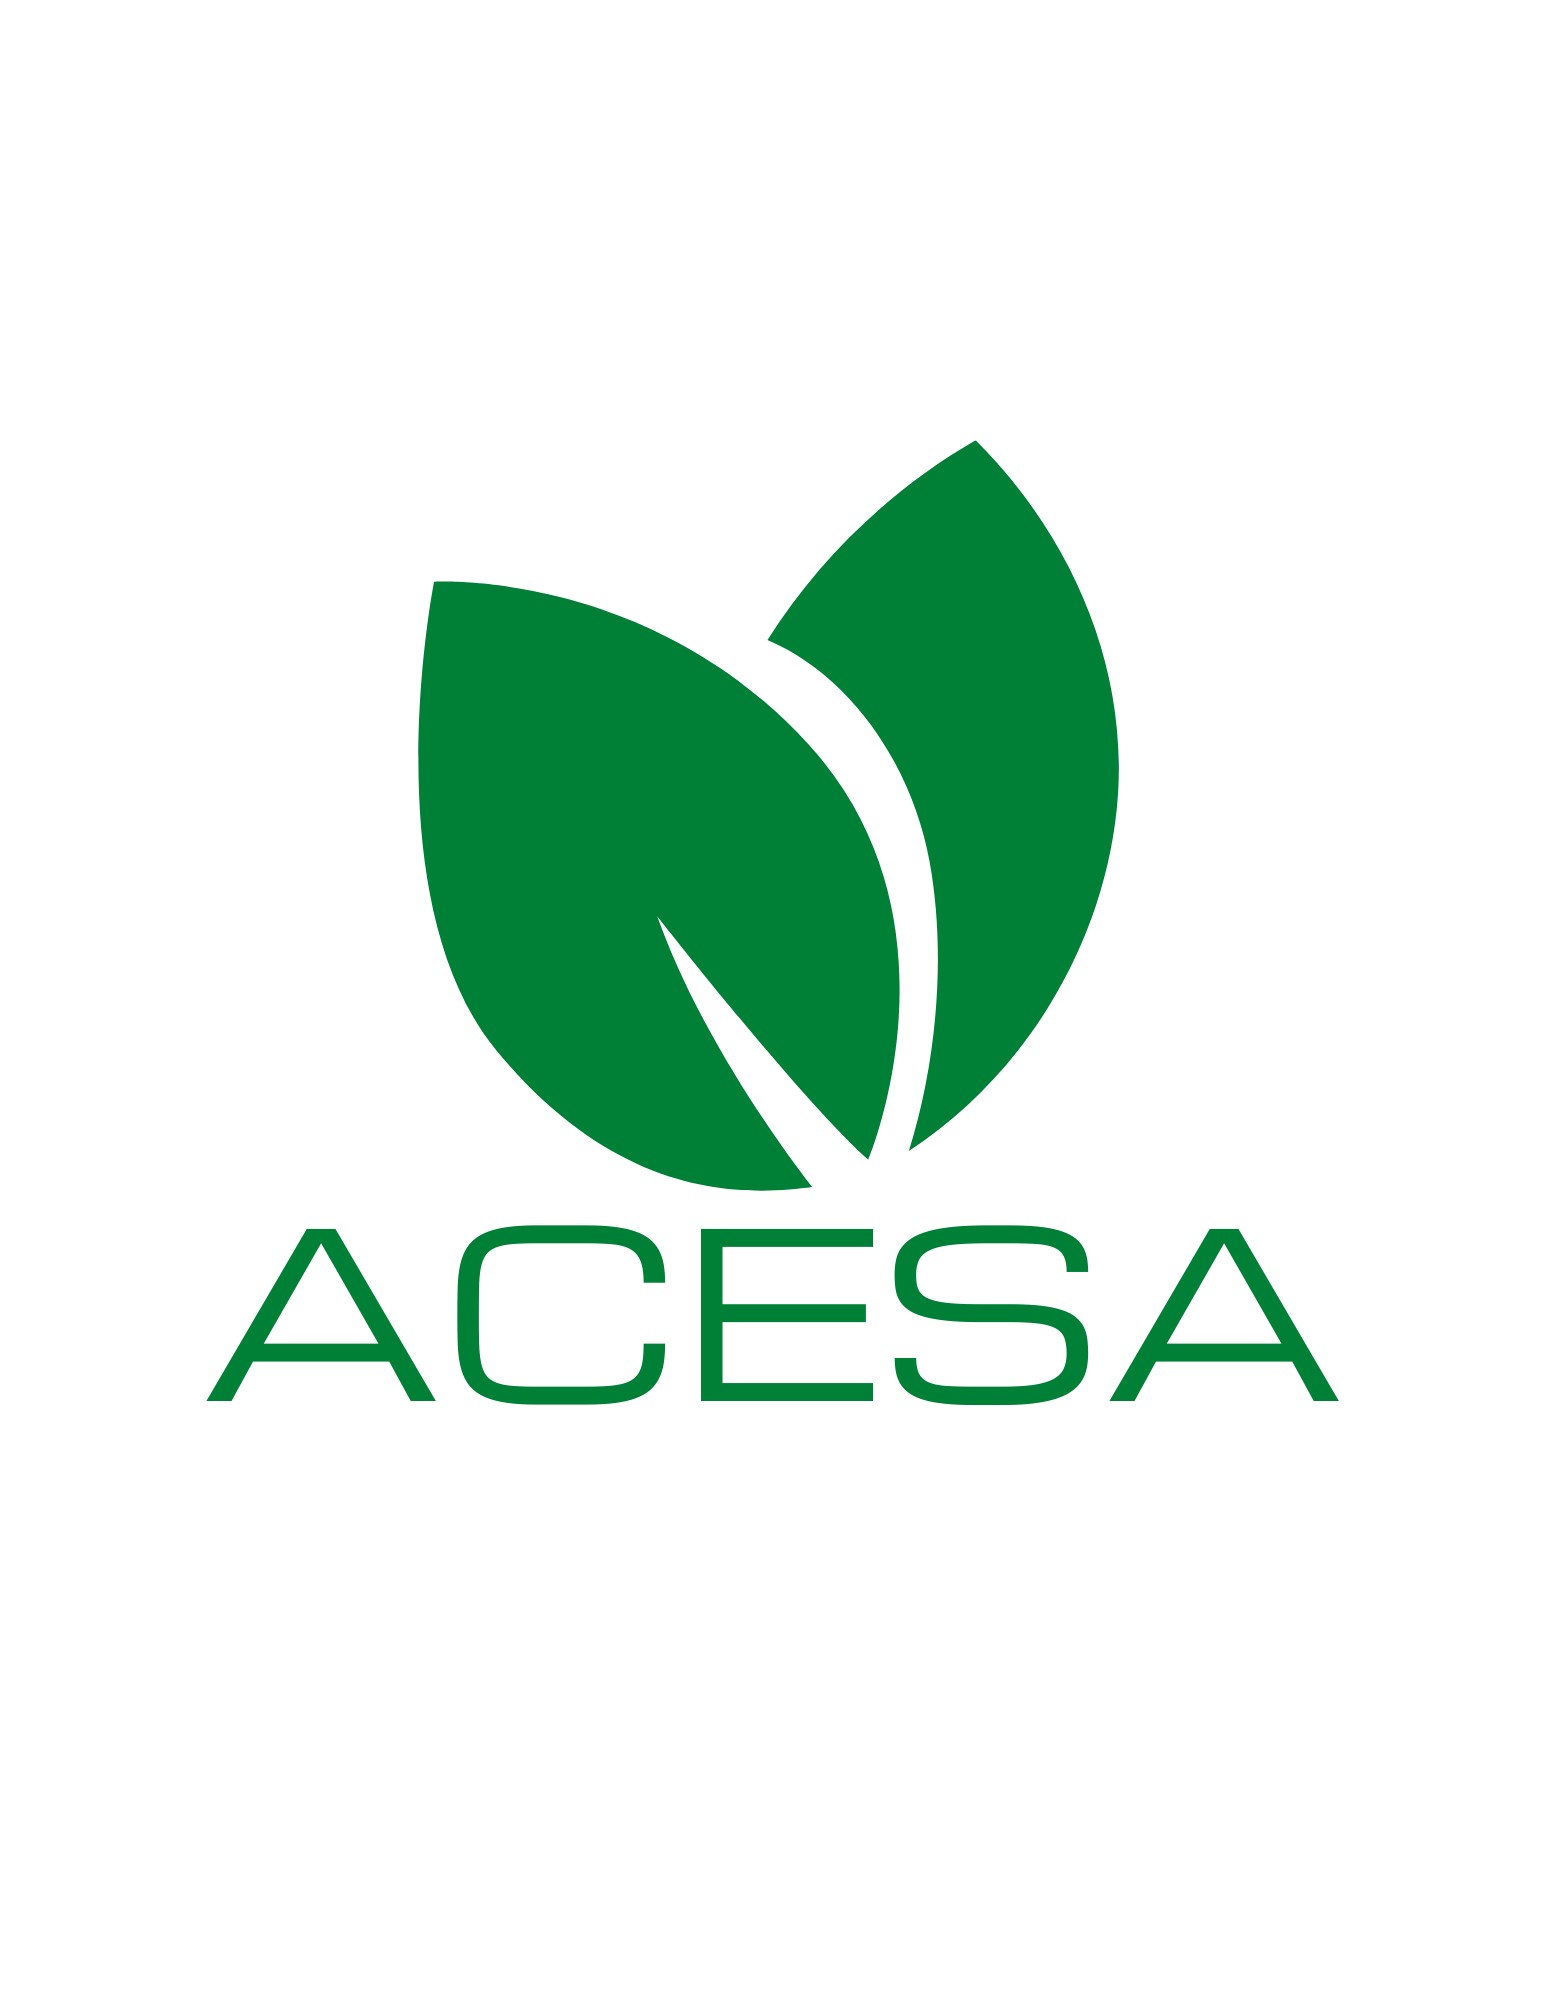 ACESA Commercial Cleaning Services - Atlanta